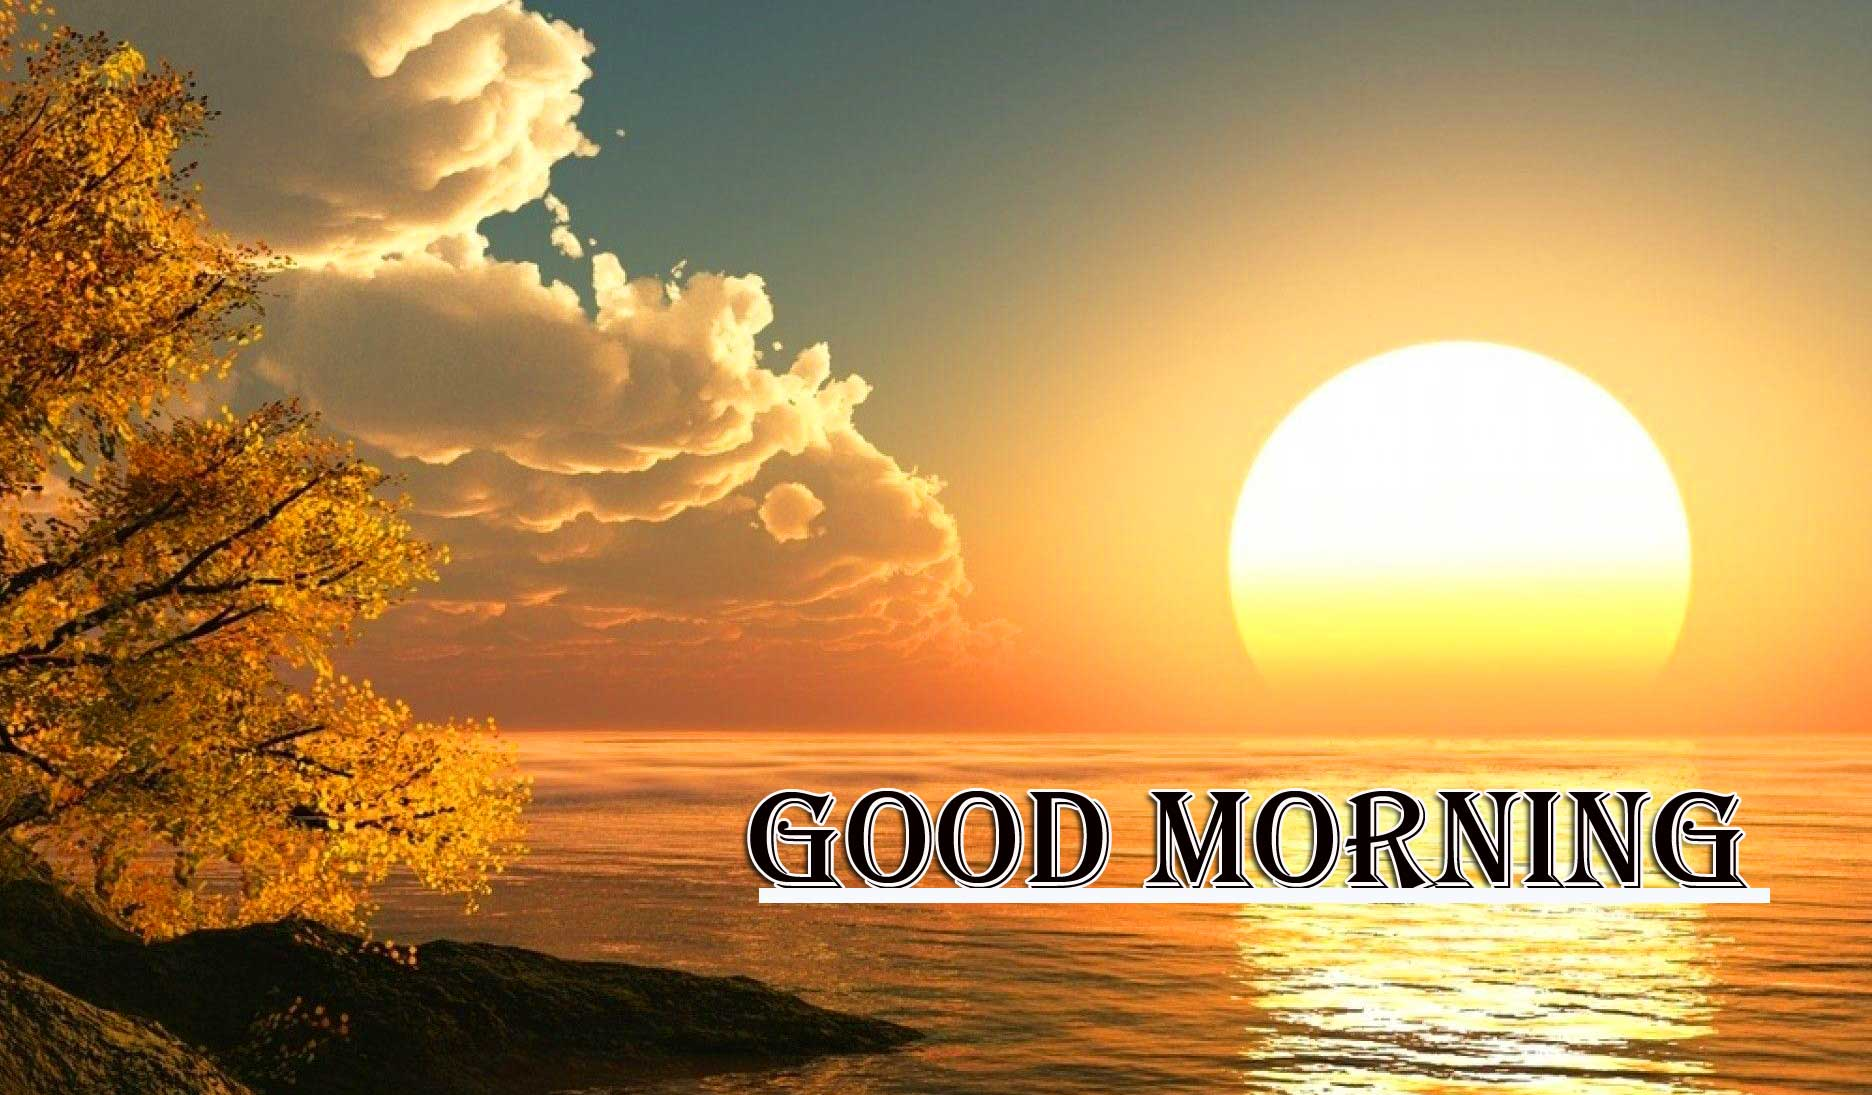 Beautiful Free Good Morning Wishes With Sunrise Wallpaper Latest Free Download